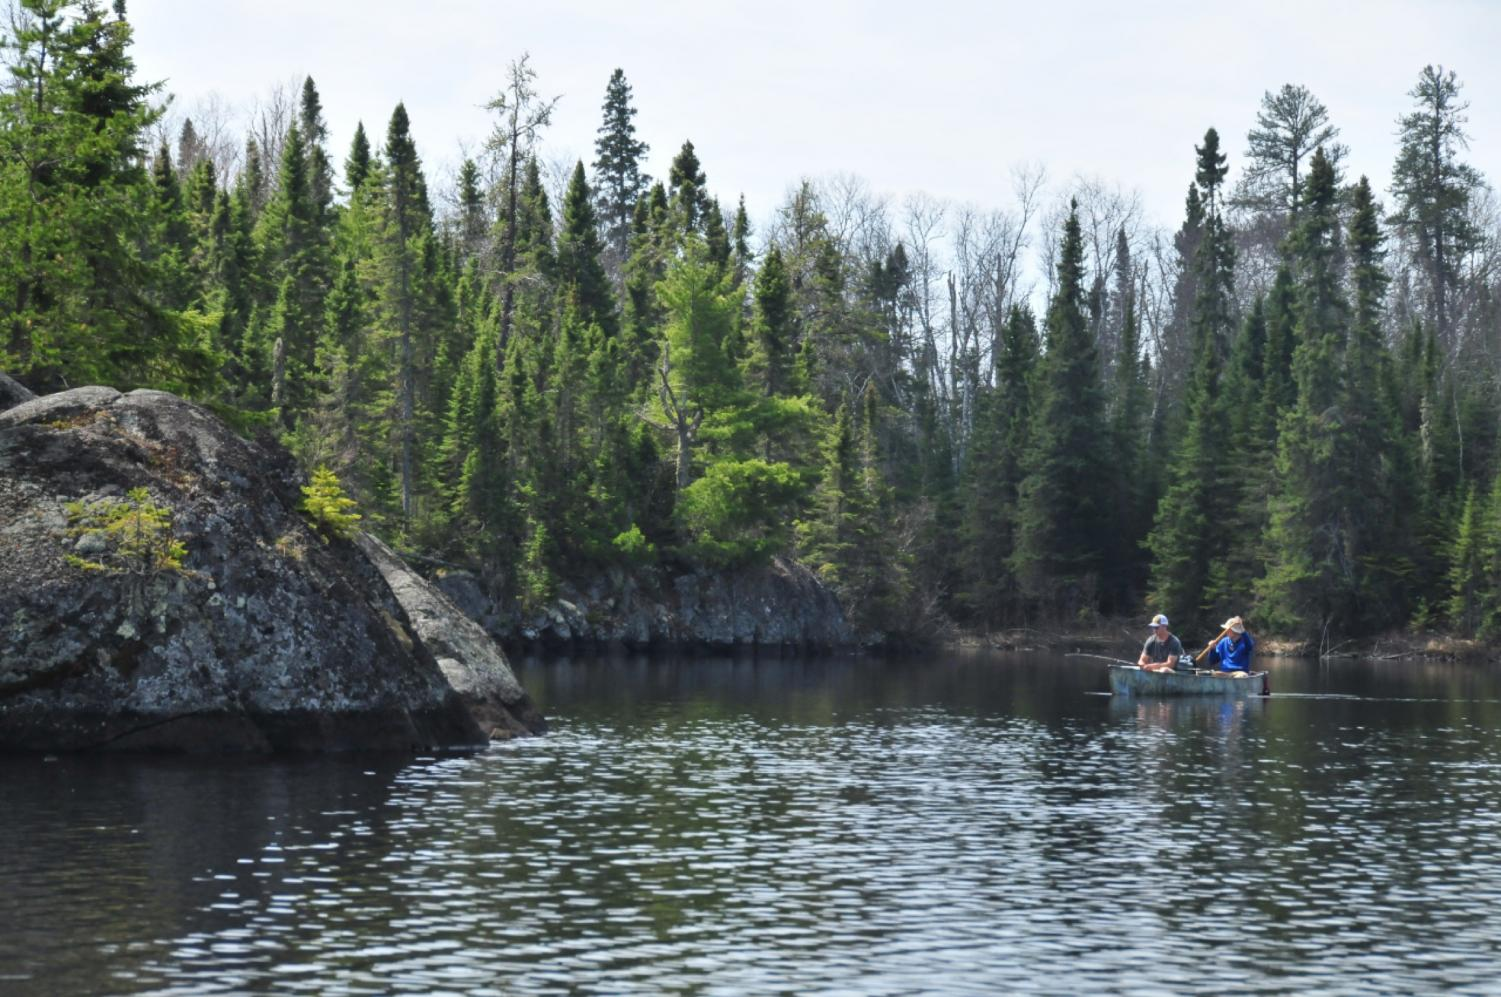 Seniors Sam Oosten and Cam Borgh fish for walleye on Flame lake in the Boundary Waters Canoe Area.